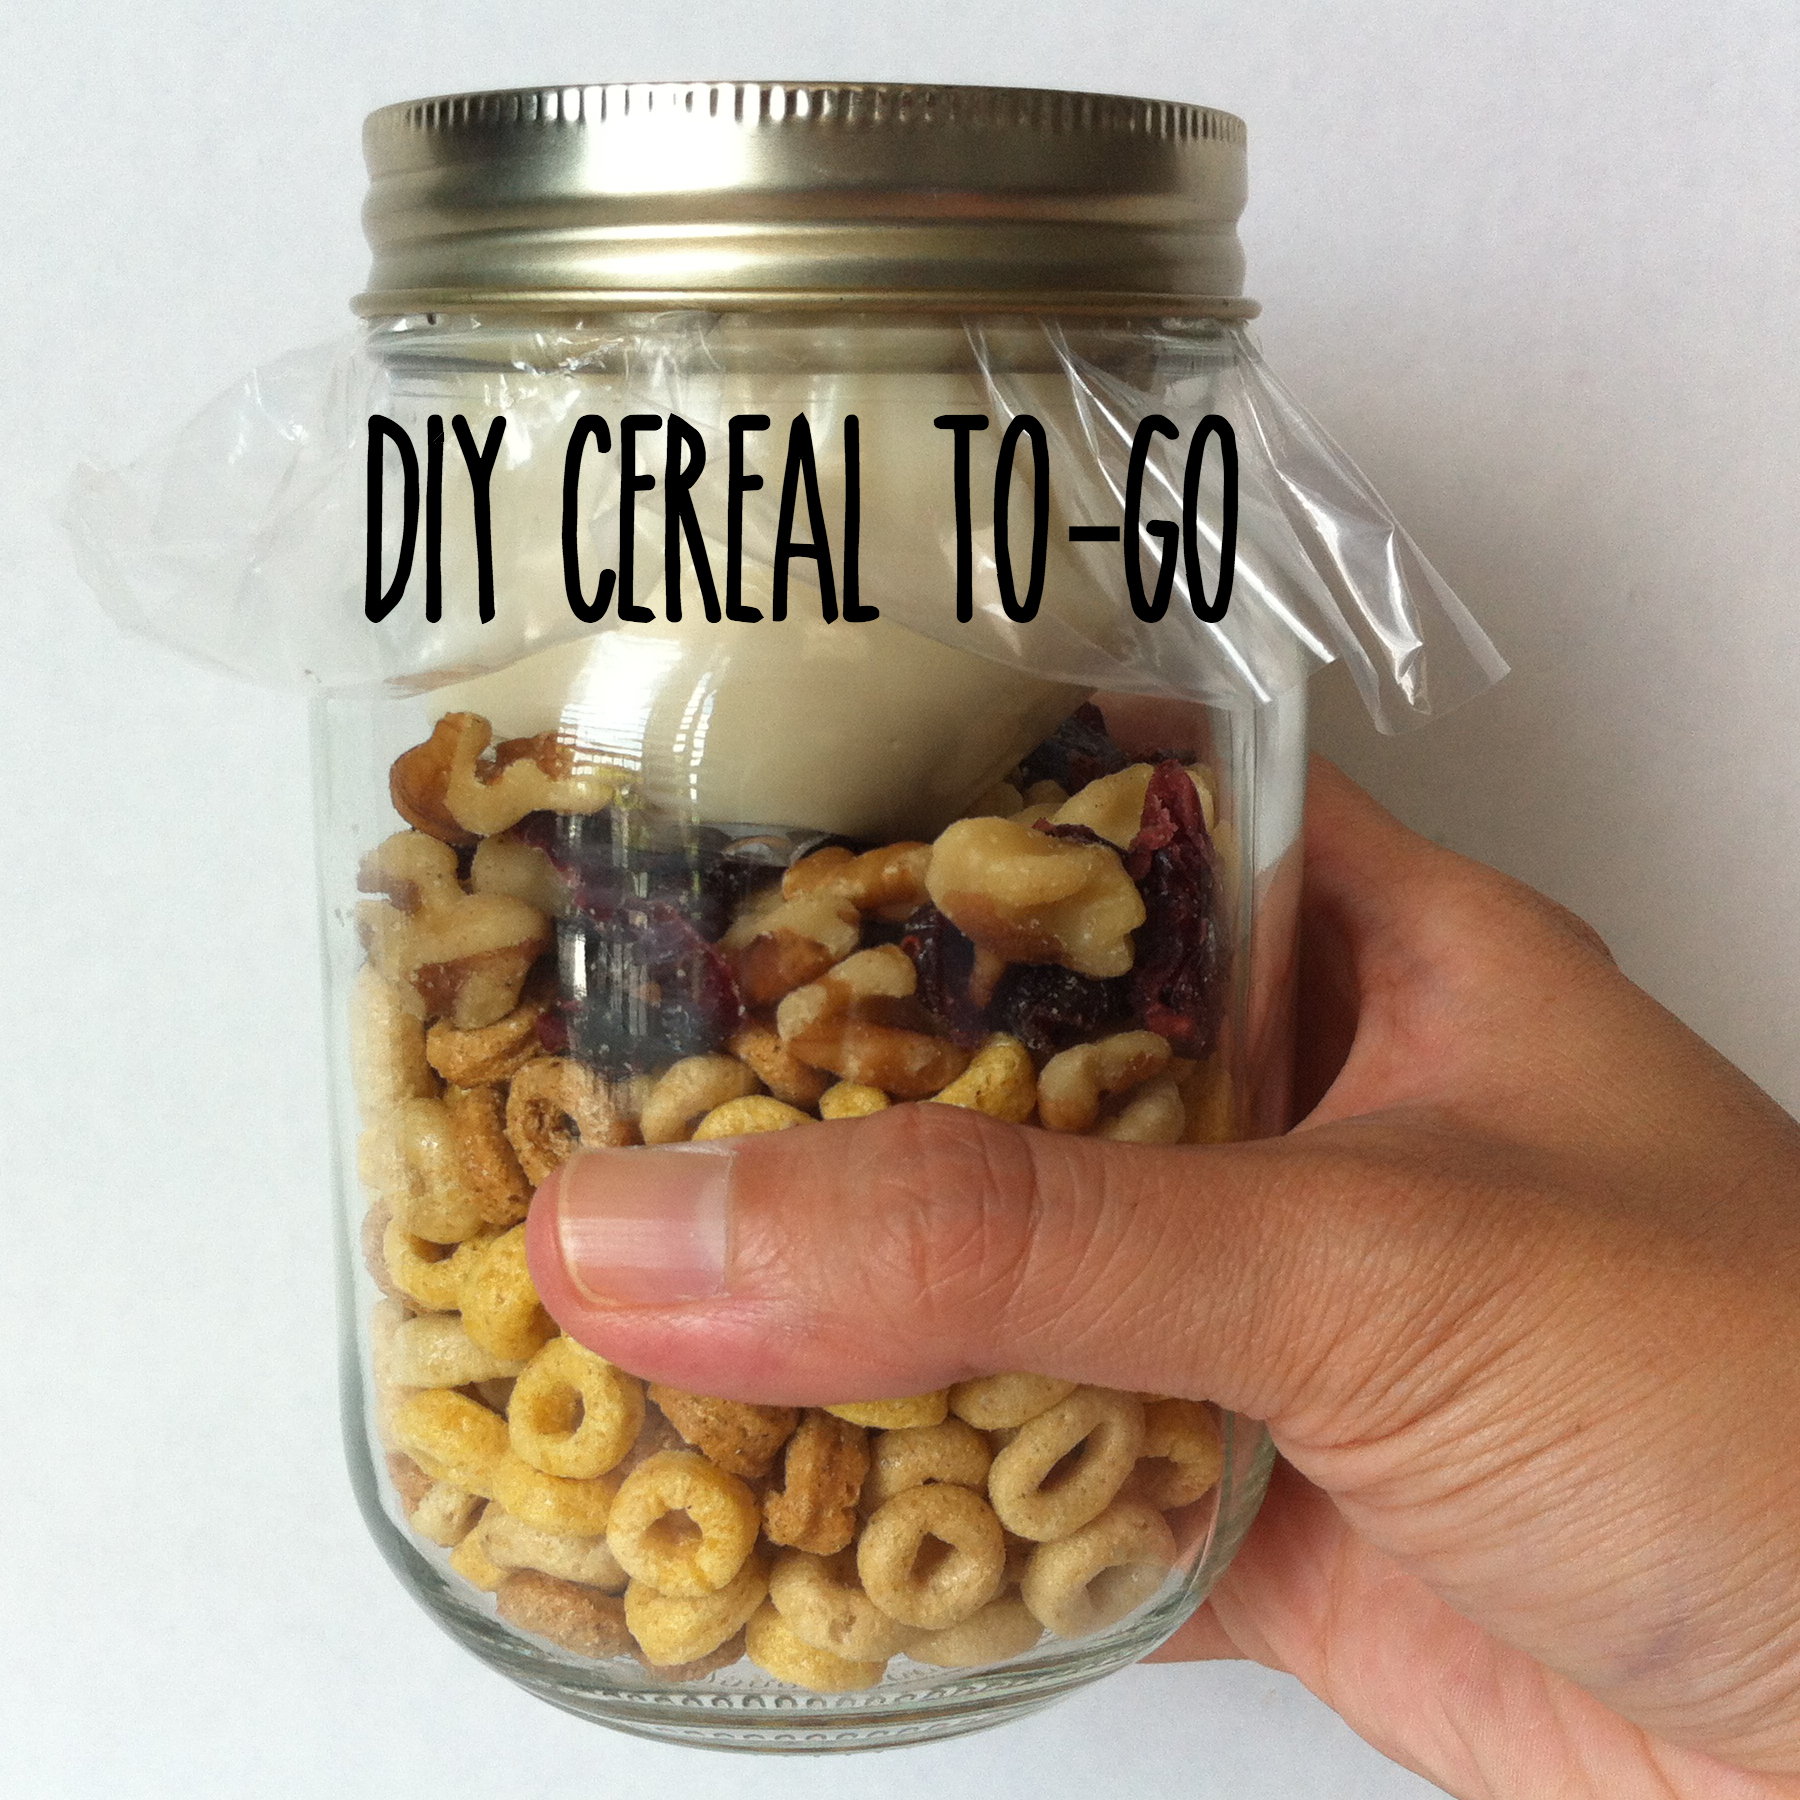 DIY-CEREAL-TO-GO